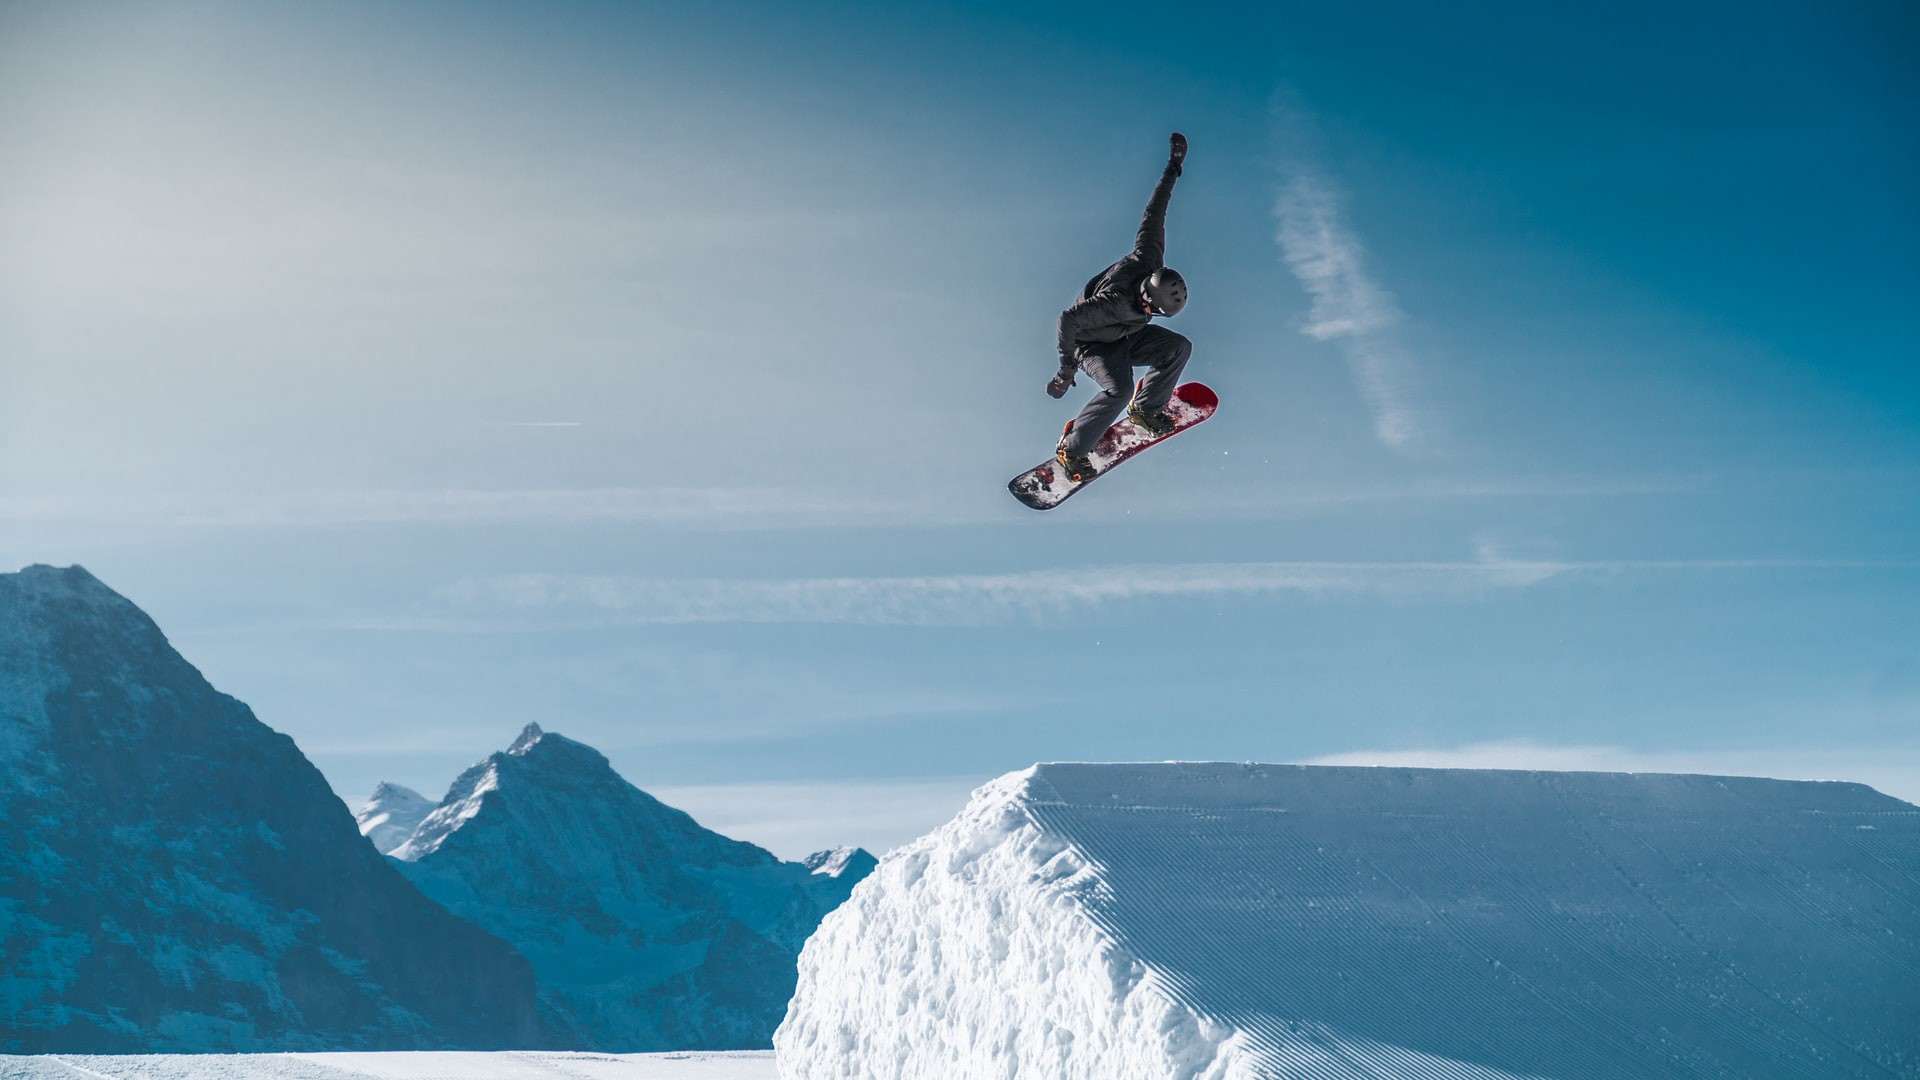 snowboarder taking flight